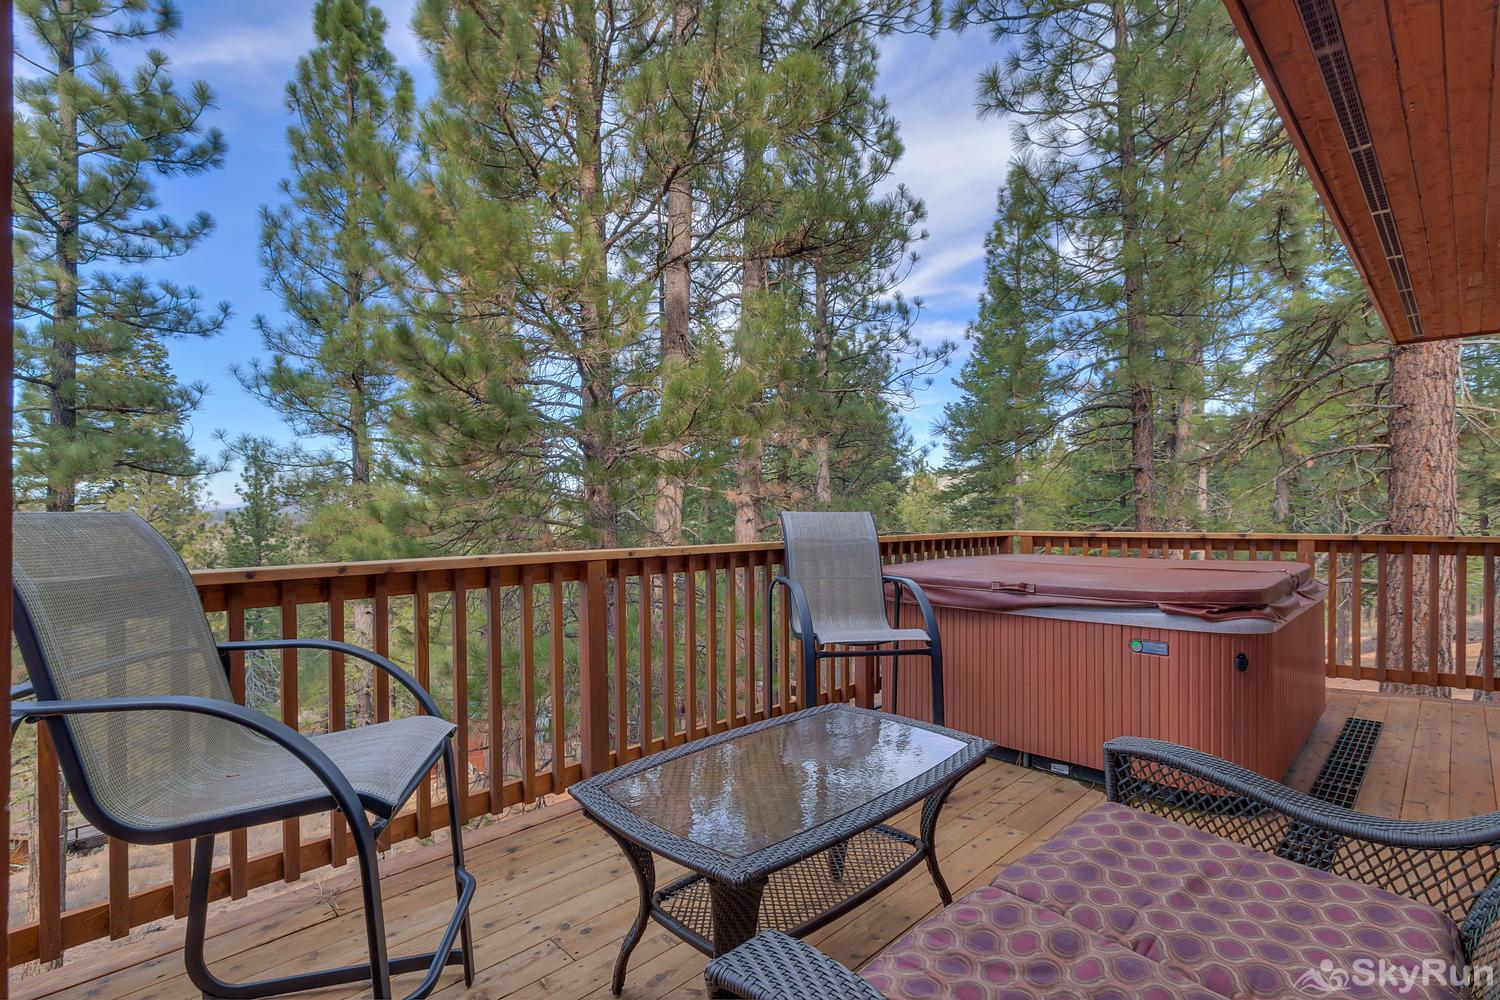 Northstar Conifer Luxury Home Deck, Spa, Seating